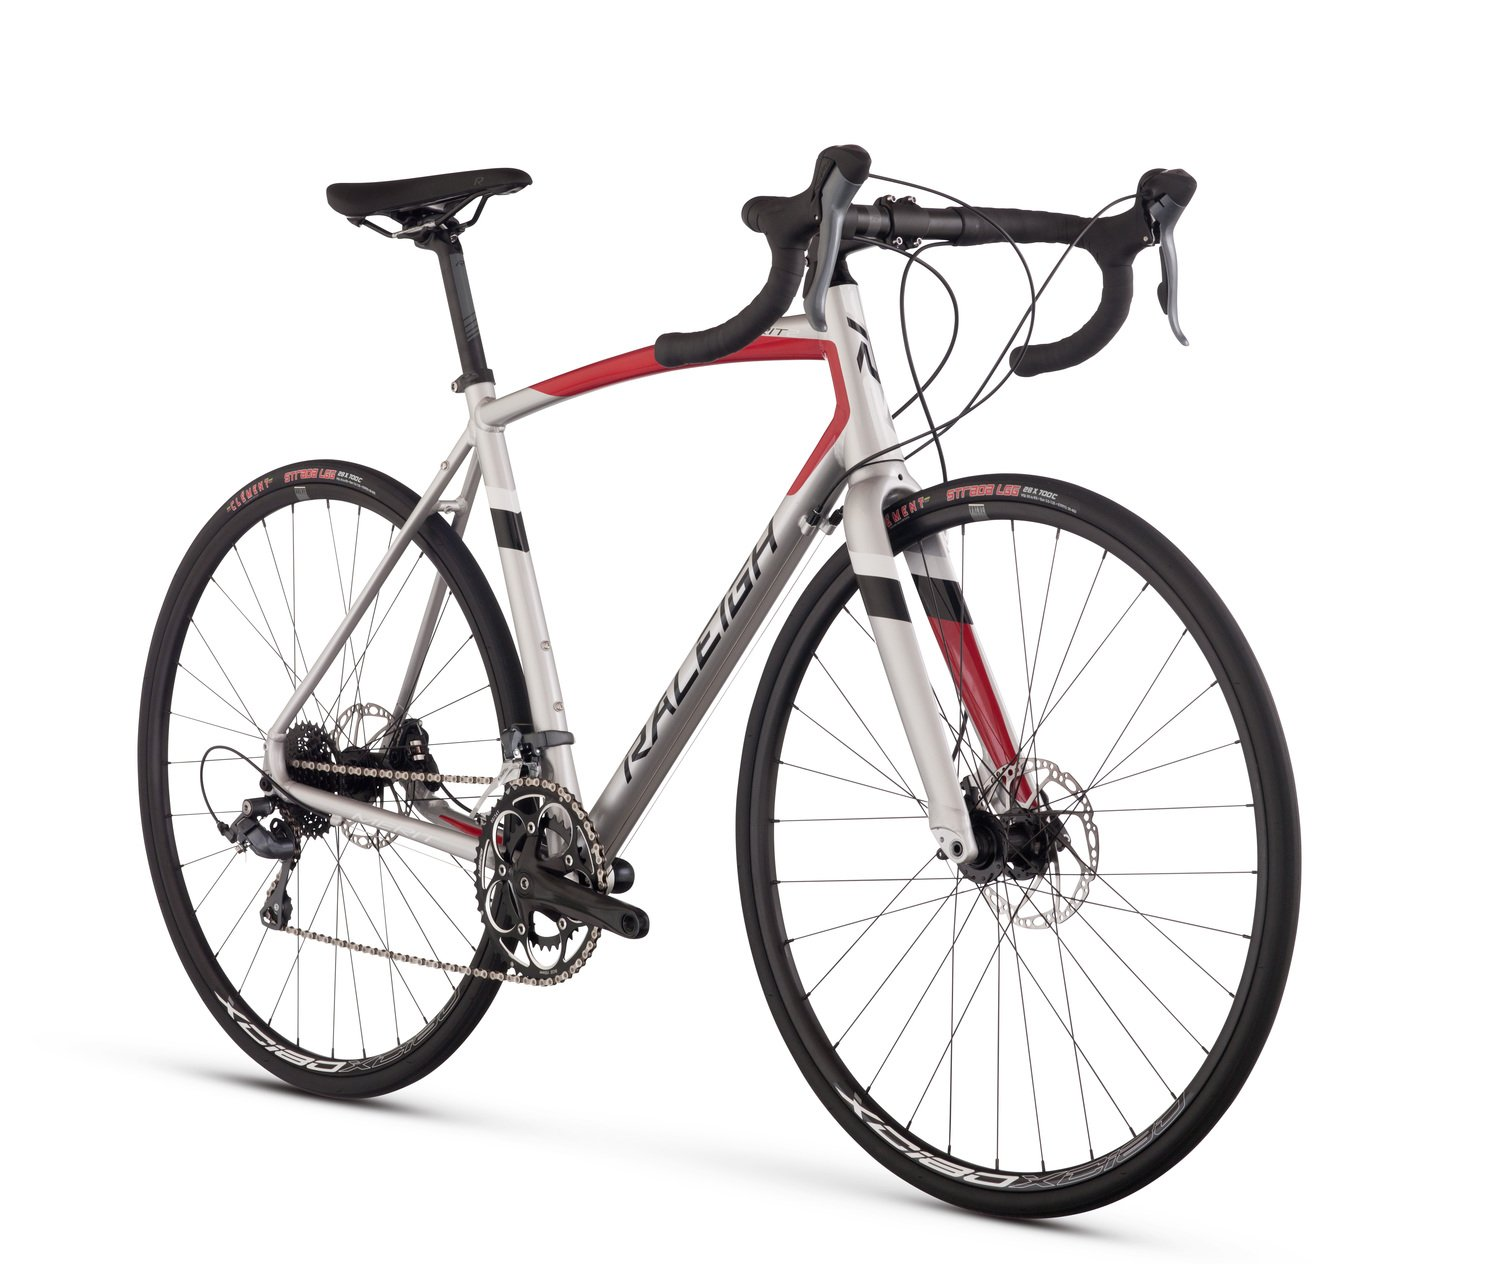 Raleigh Bikes Merit 2 Endurance Road Bike Best Touring Bikes Under $1000